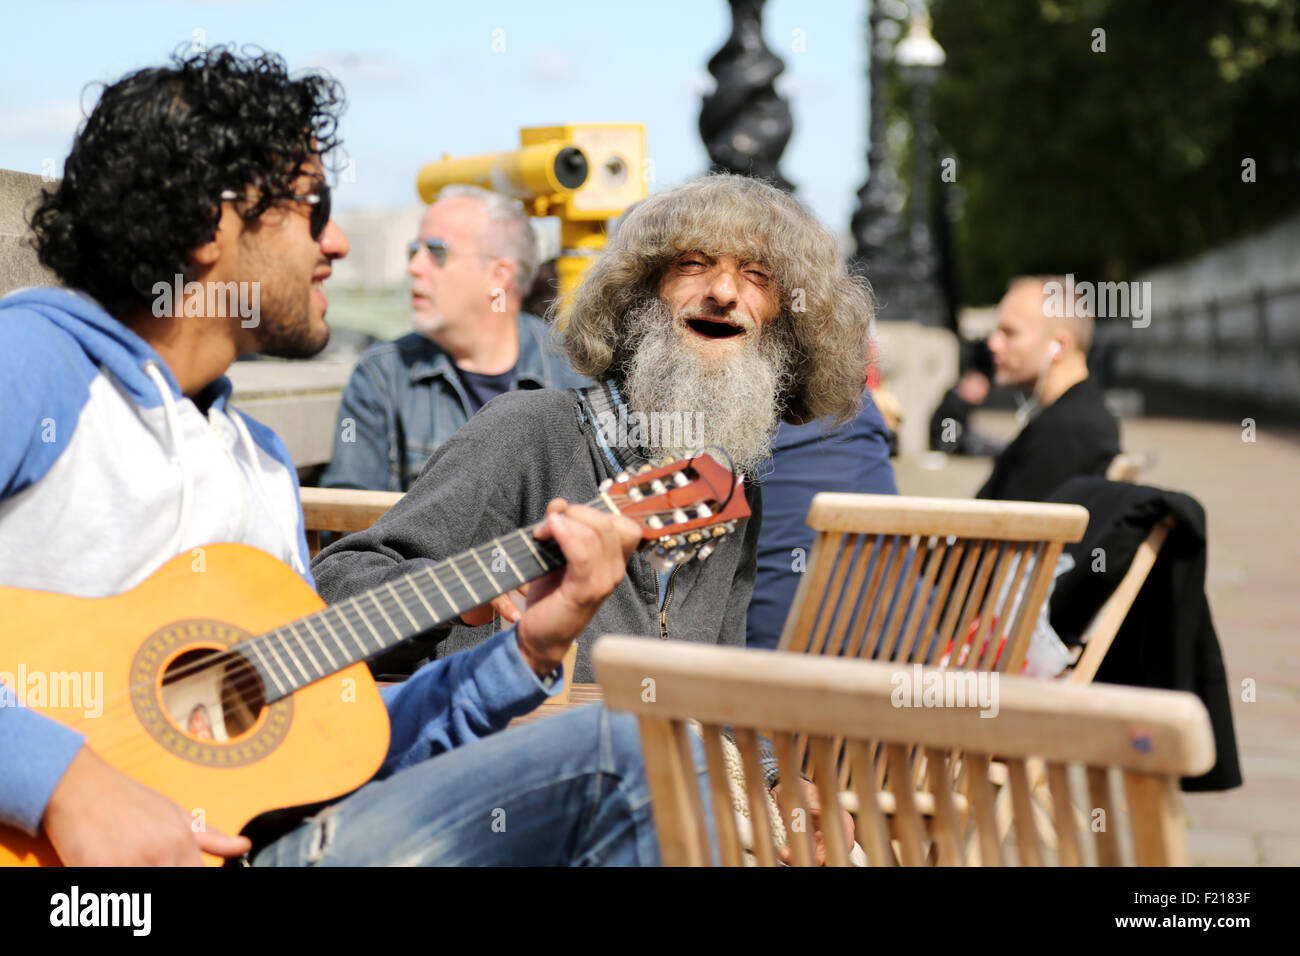 a-man-playing-an-acoustic-guitar-enterta